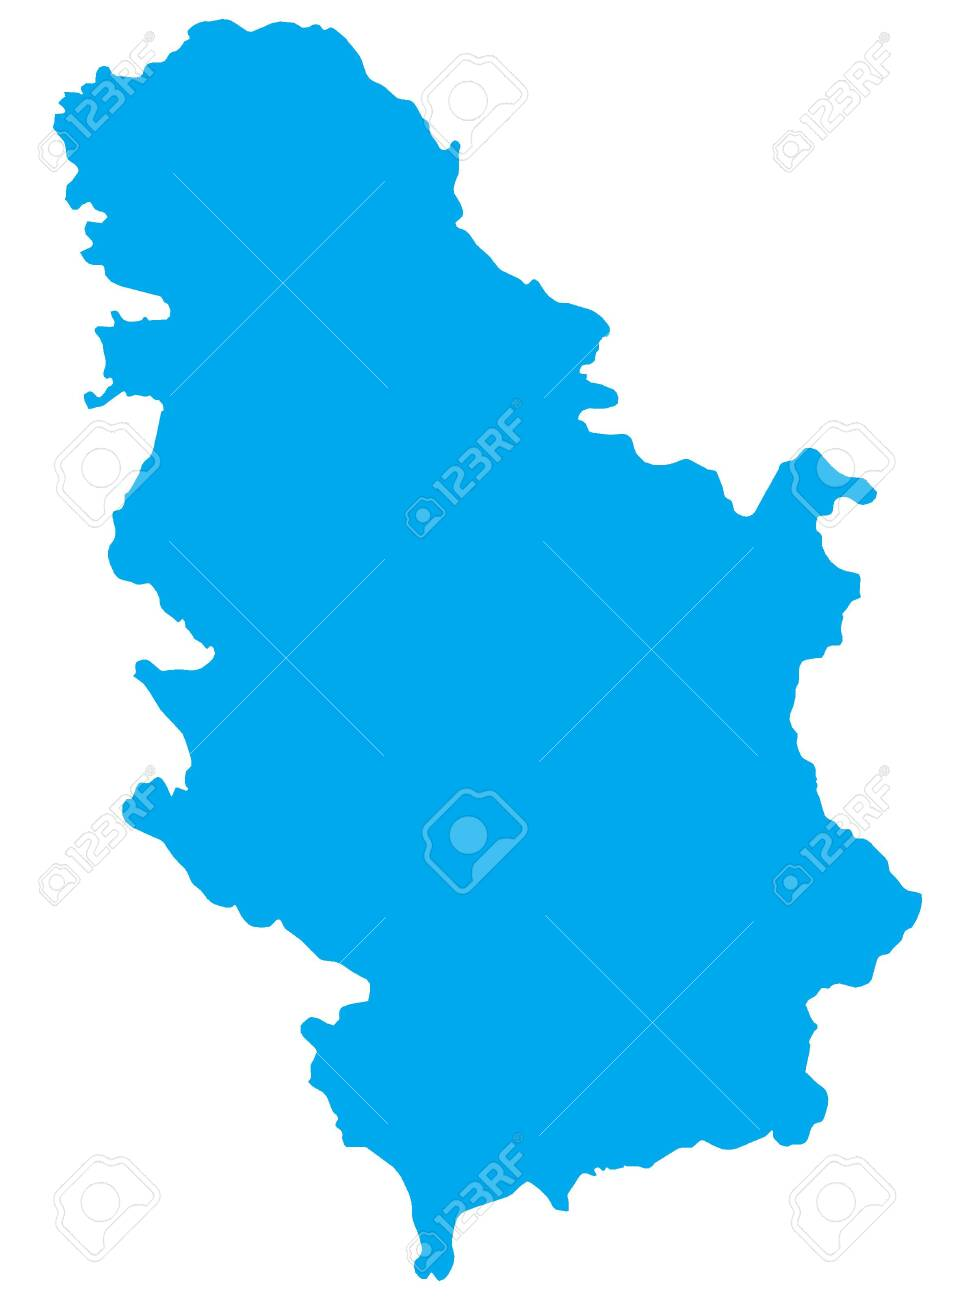 Blue Flat Vector Map of Serbia - 133585580